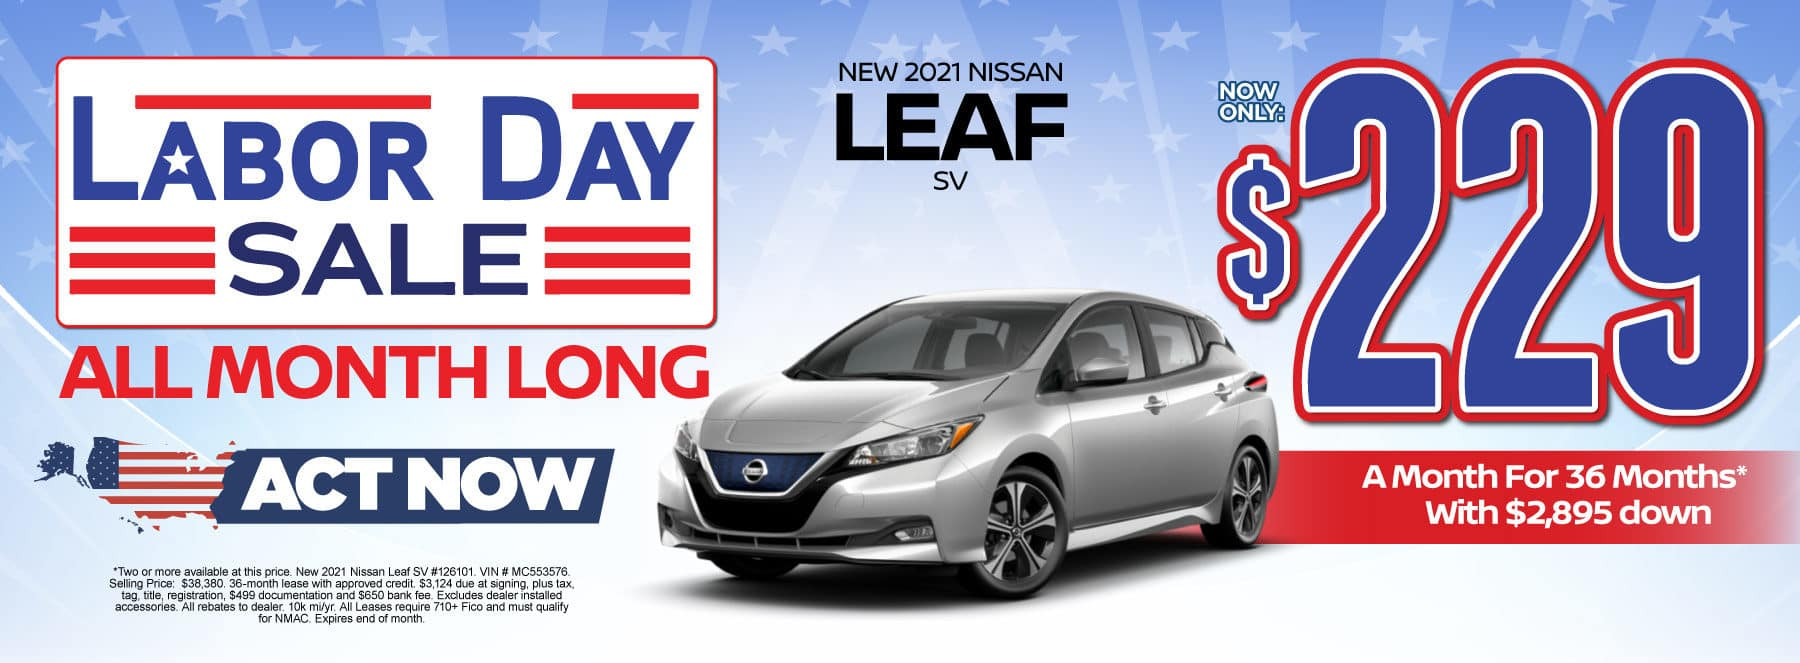 New 2021 Nissan Leaf - Now only $229 a month - Act Now